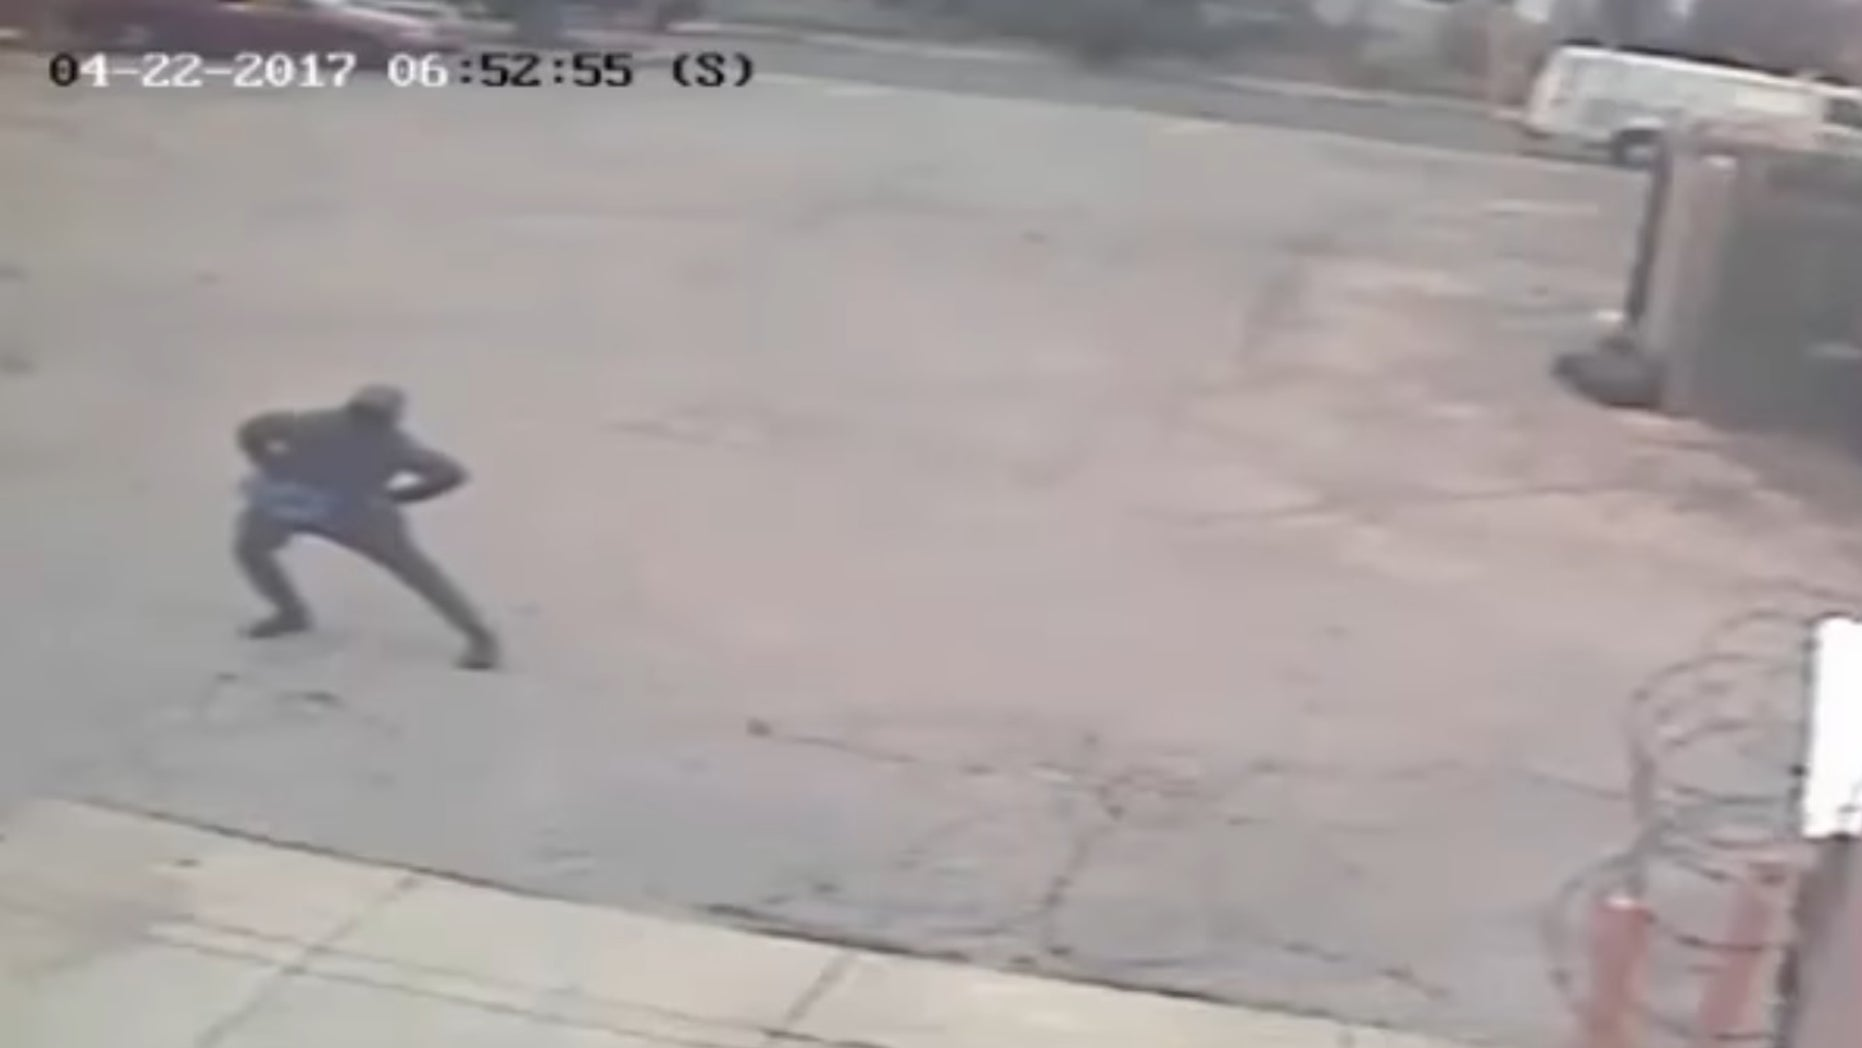 Philadelphia Dunkin' Donuts robber spotted stretching